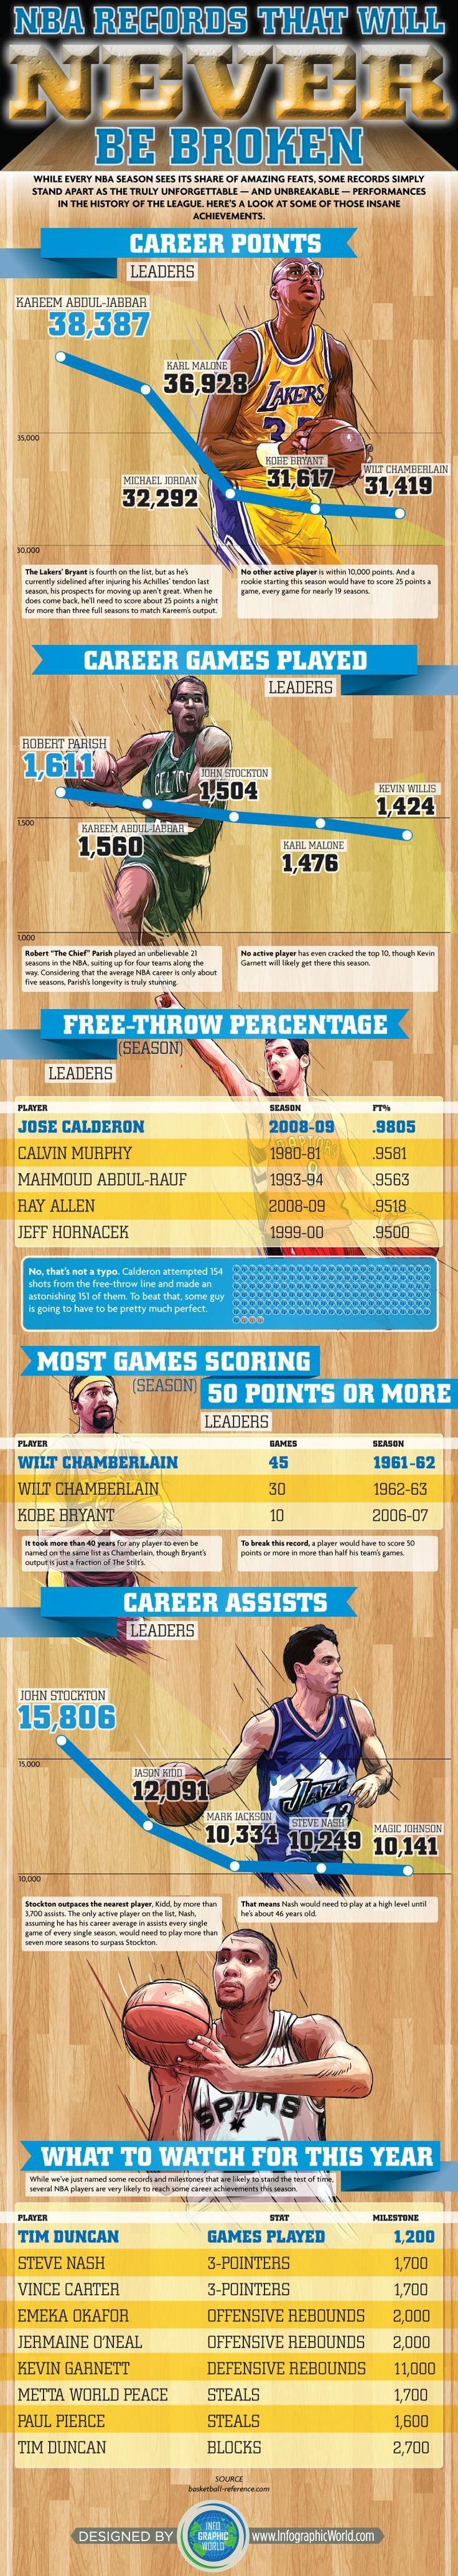 NBA Records that will never be broken.